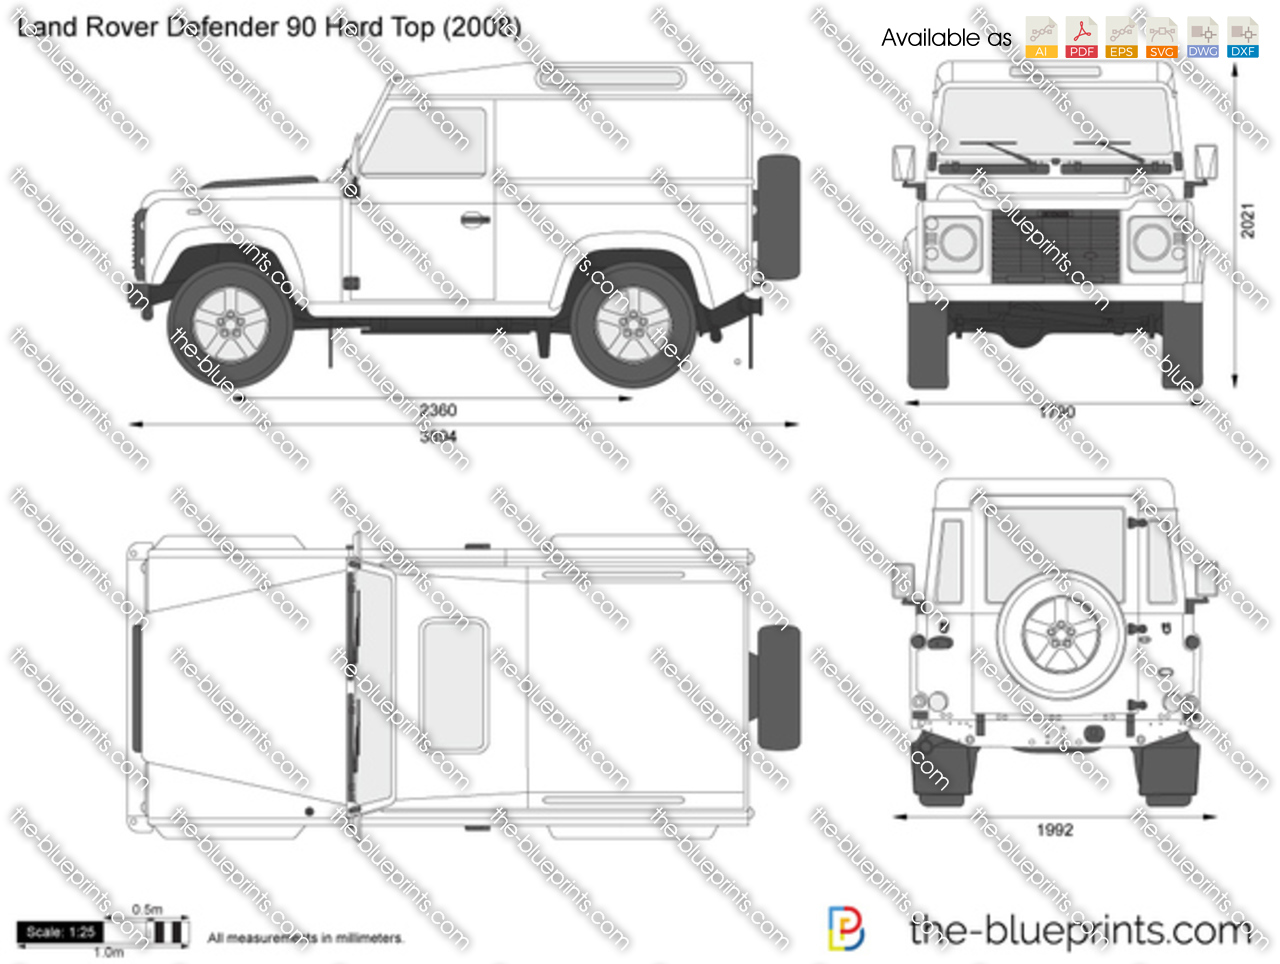 Land Rover Defender 90 Hard Top 2007